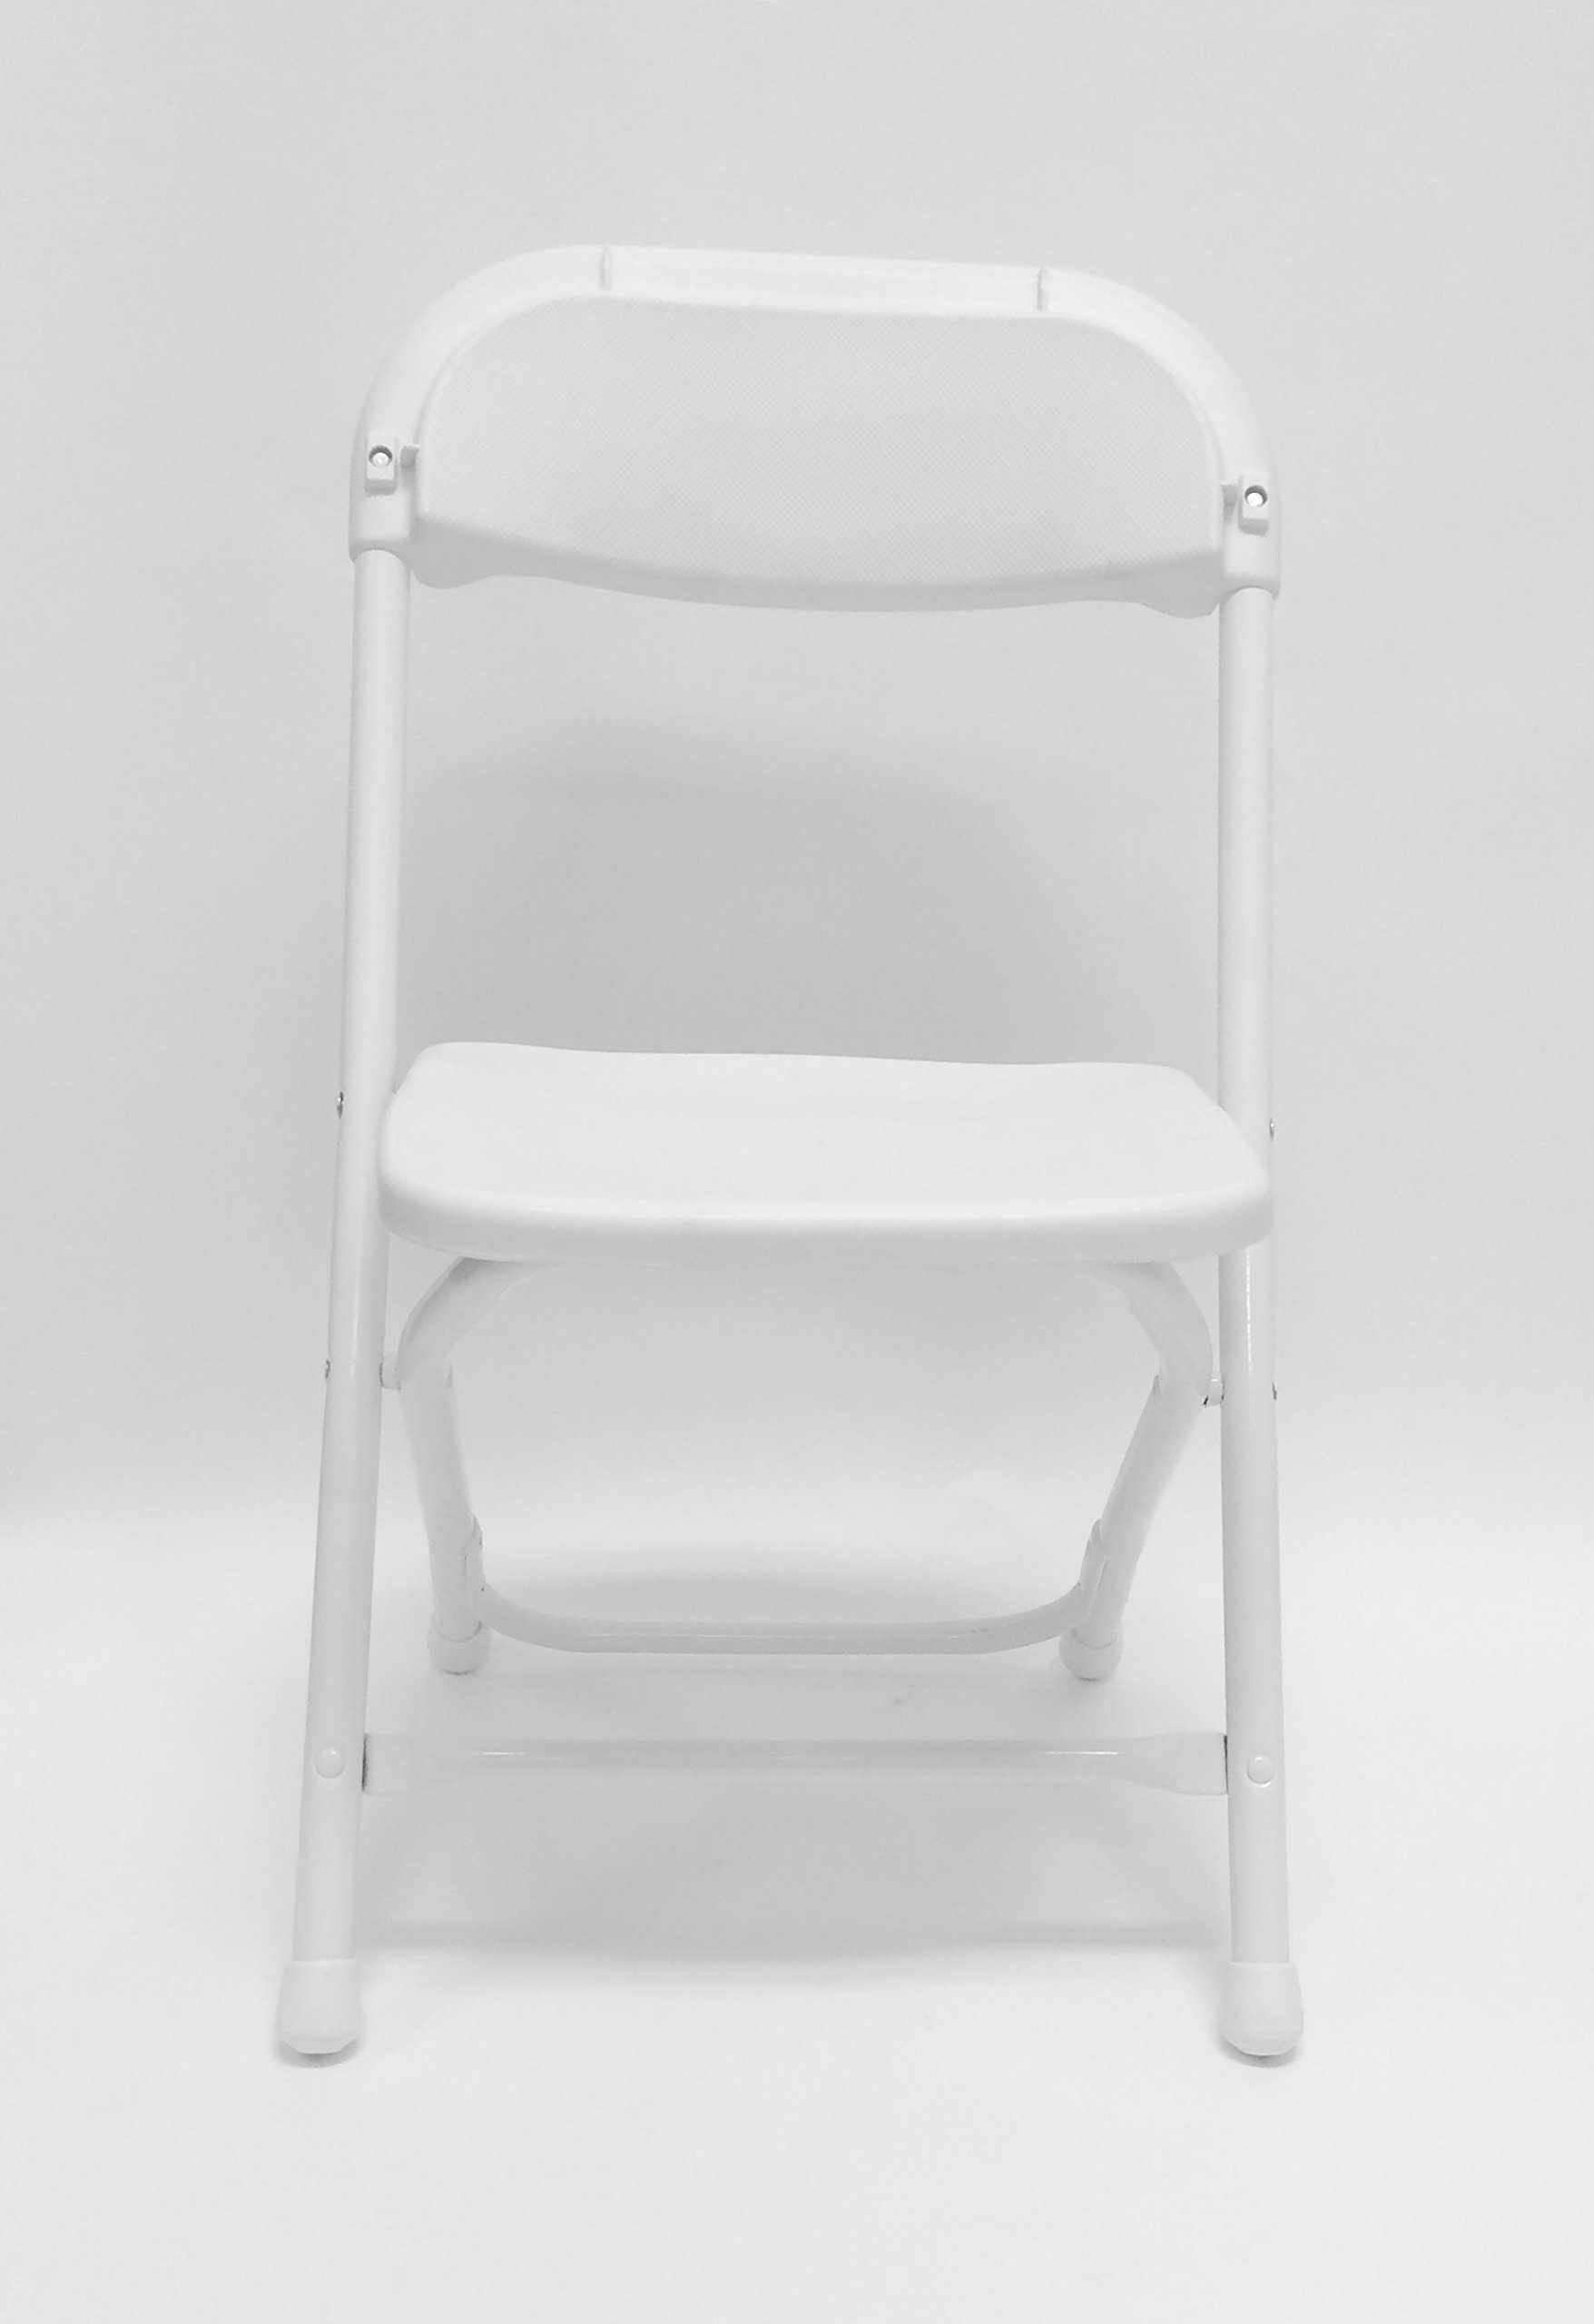 10 Piece Kids Plastic Folding Chairs Package - White